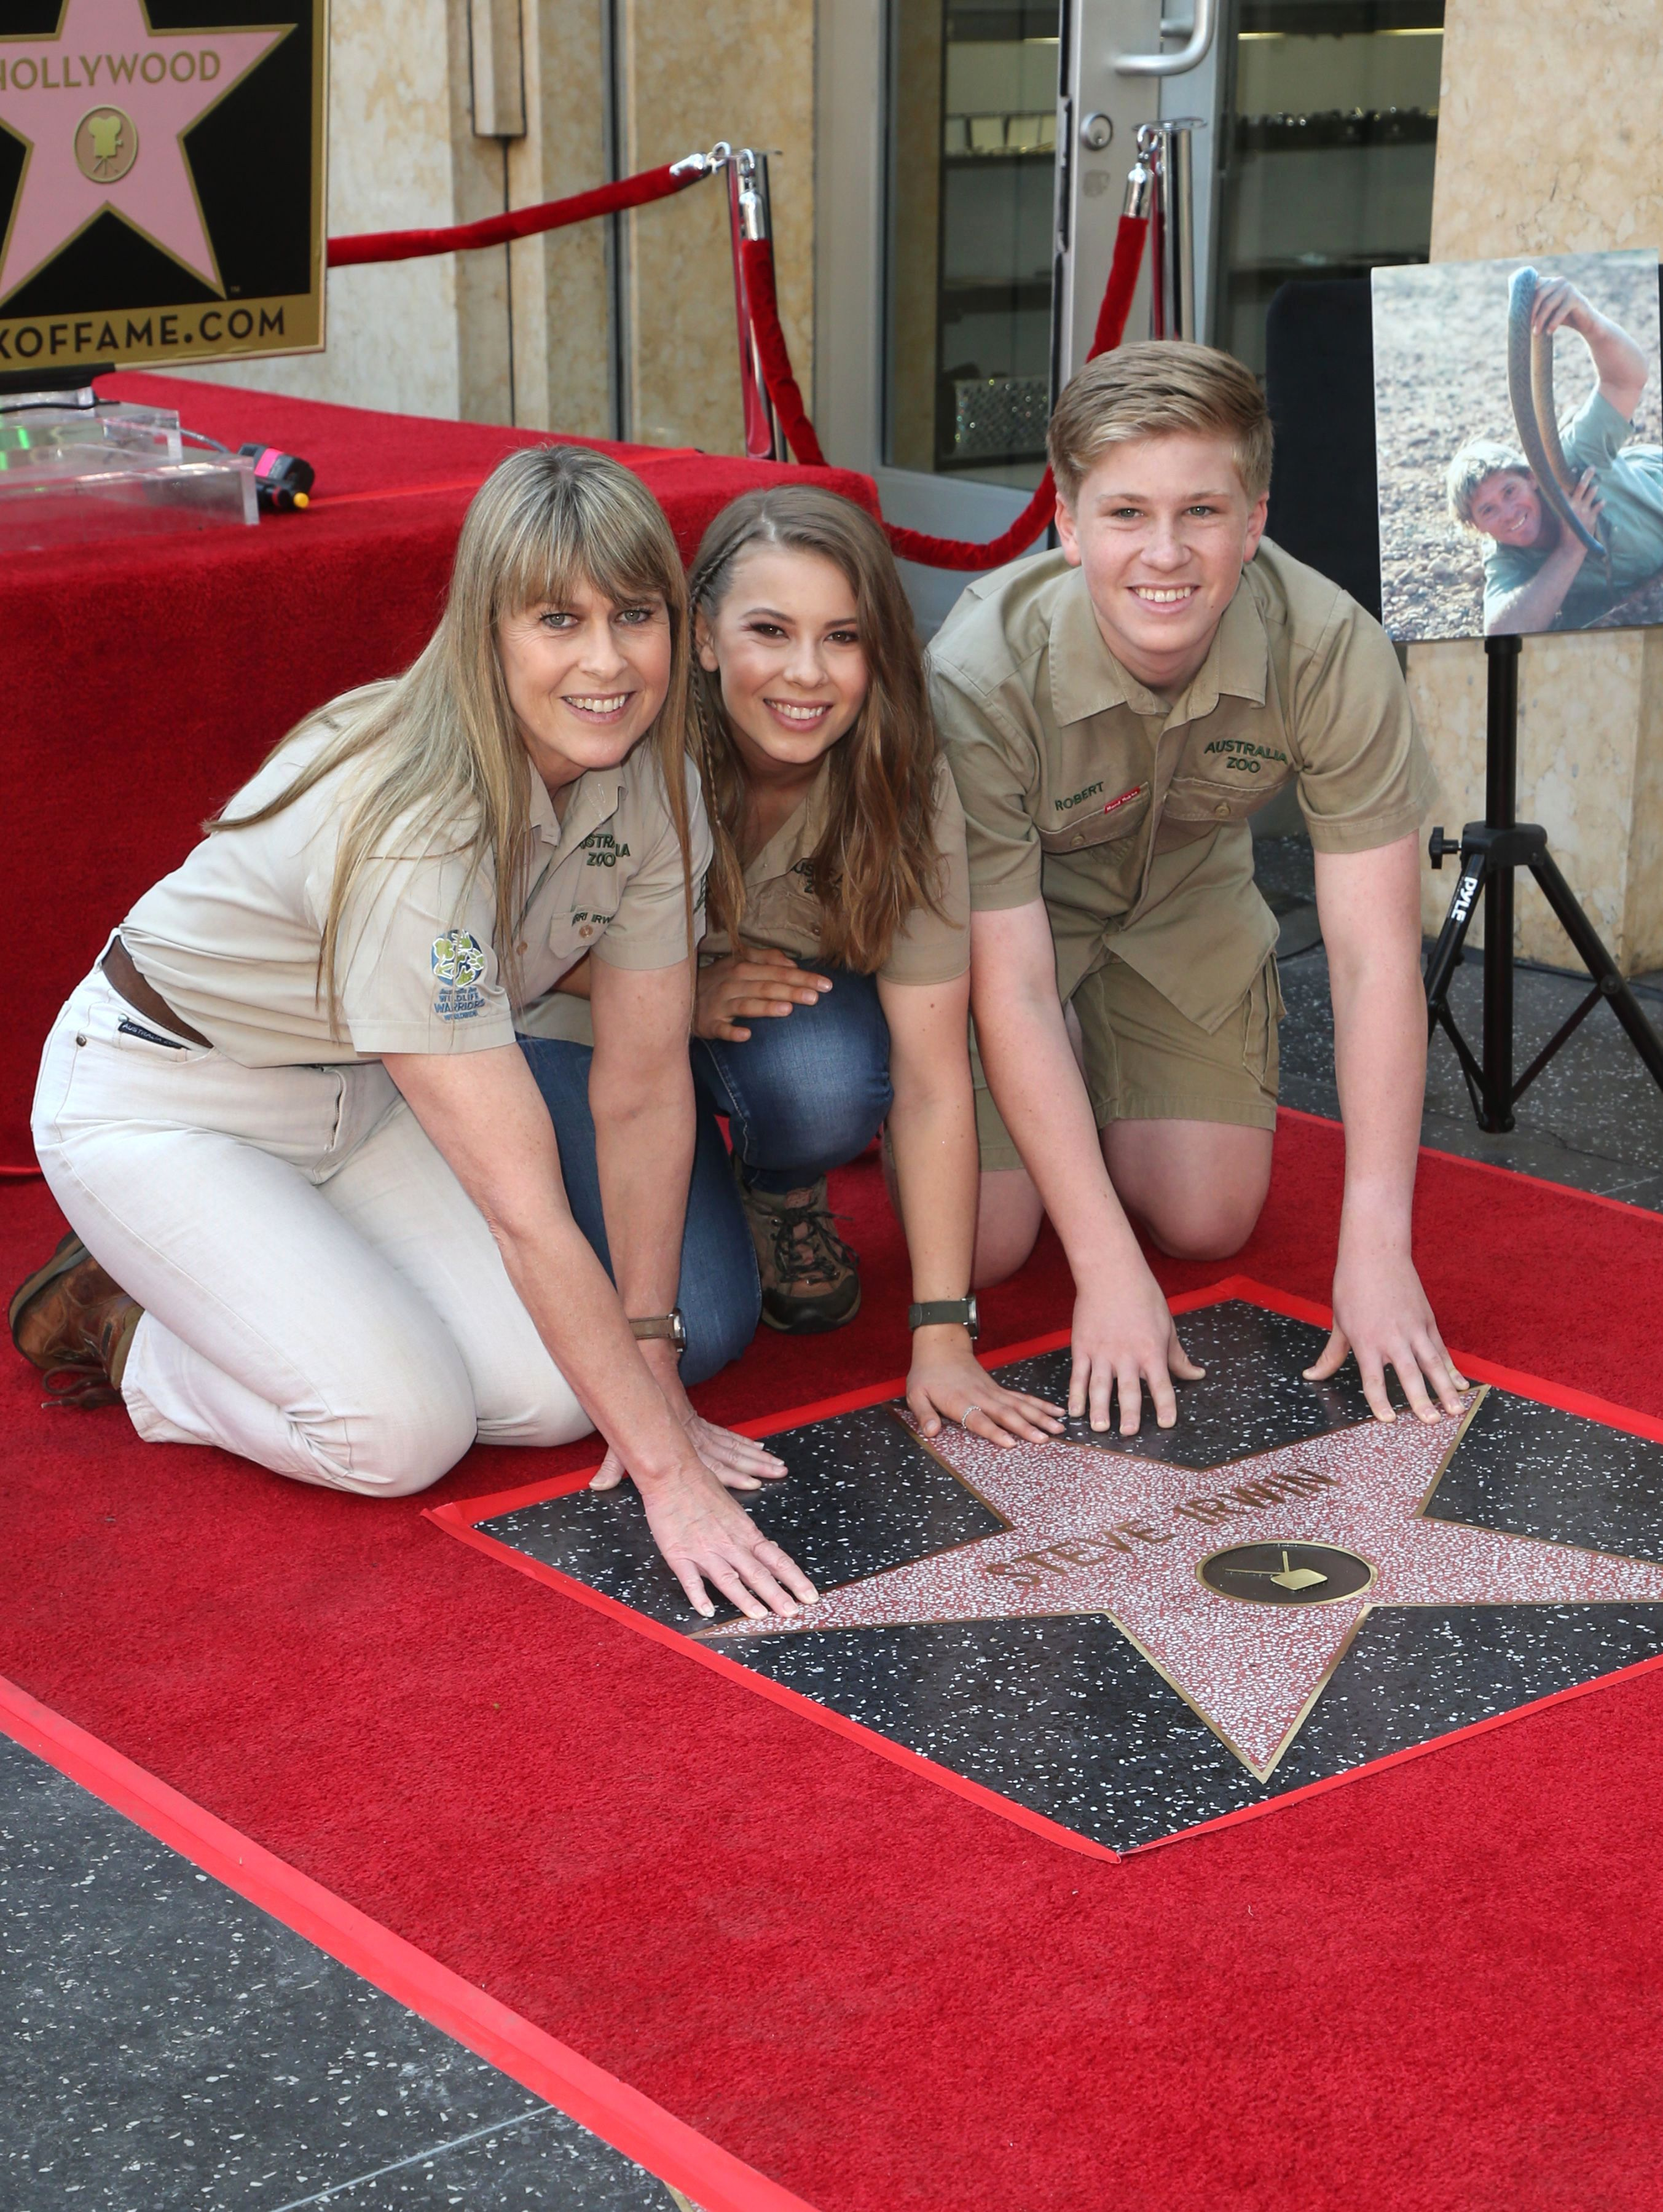 Terri Irwin, Bindi Irwin and Robert Irwin were all on hand as the late Steve Irwin was honored with a star on the Hollywood Walk of Fame on April 26, 2018.